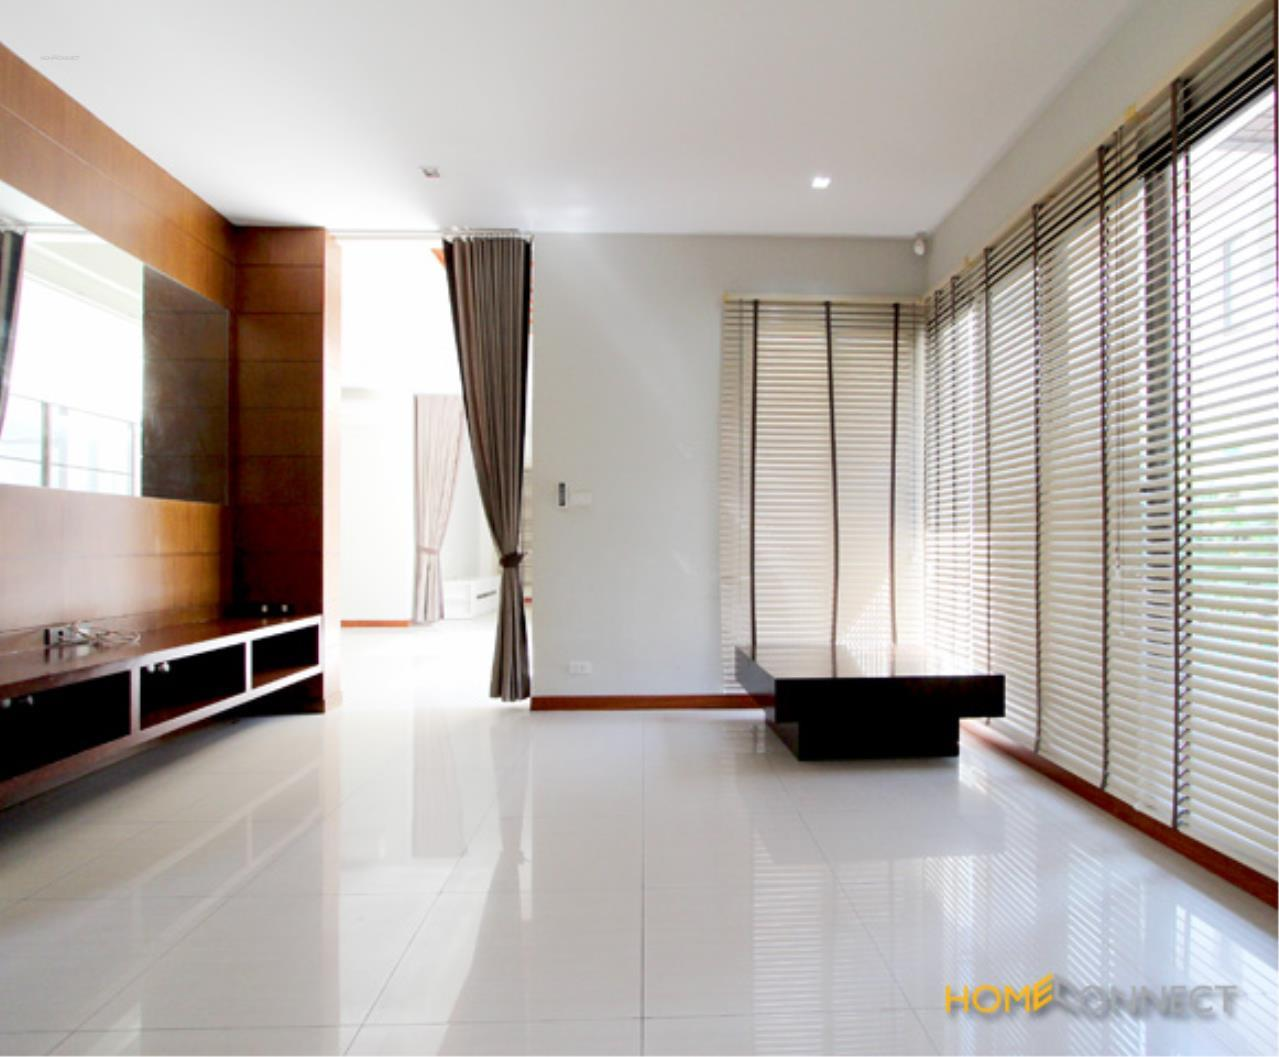 Home Connect Thailand Agency's Single House for rent in Suklhumvit 26  5